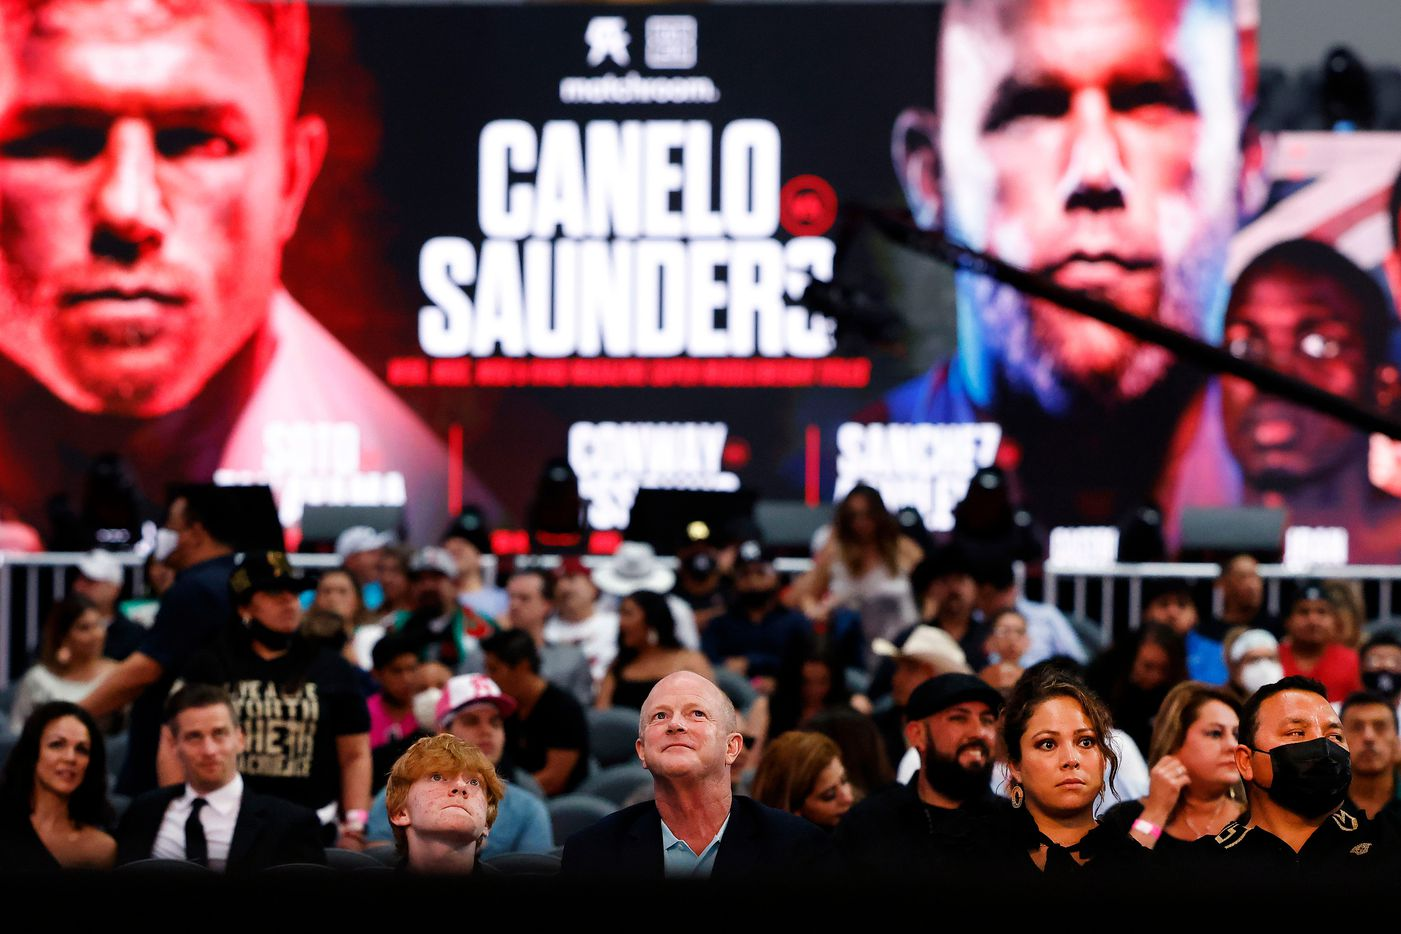 Fans watch the early bouts before the Canelo Alvarez-Billy Joe Saunders fight at AT&T Stadium in Arlington, Saturday, May 8, 2021. (Tom Fox/The Dallas Morning News)